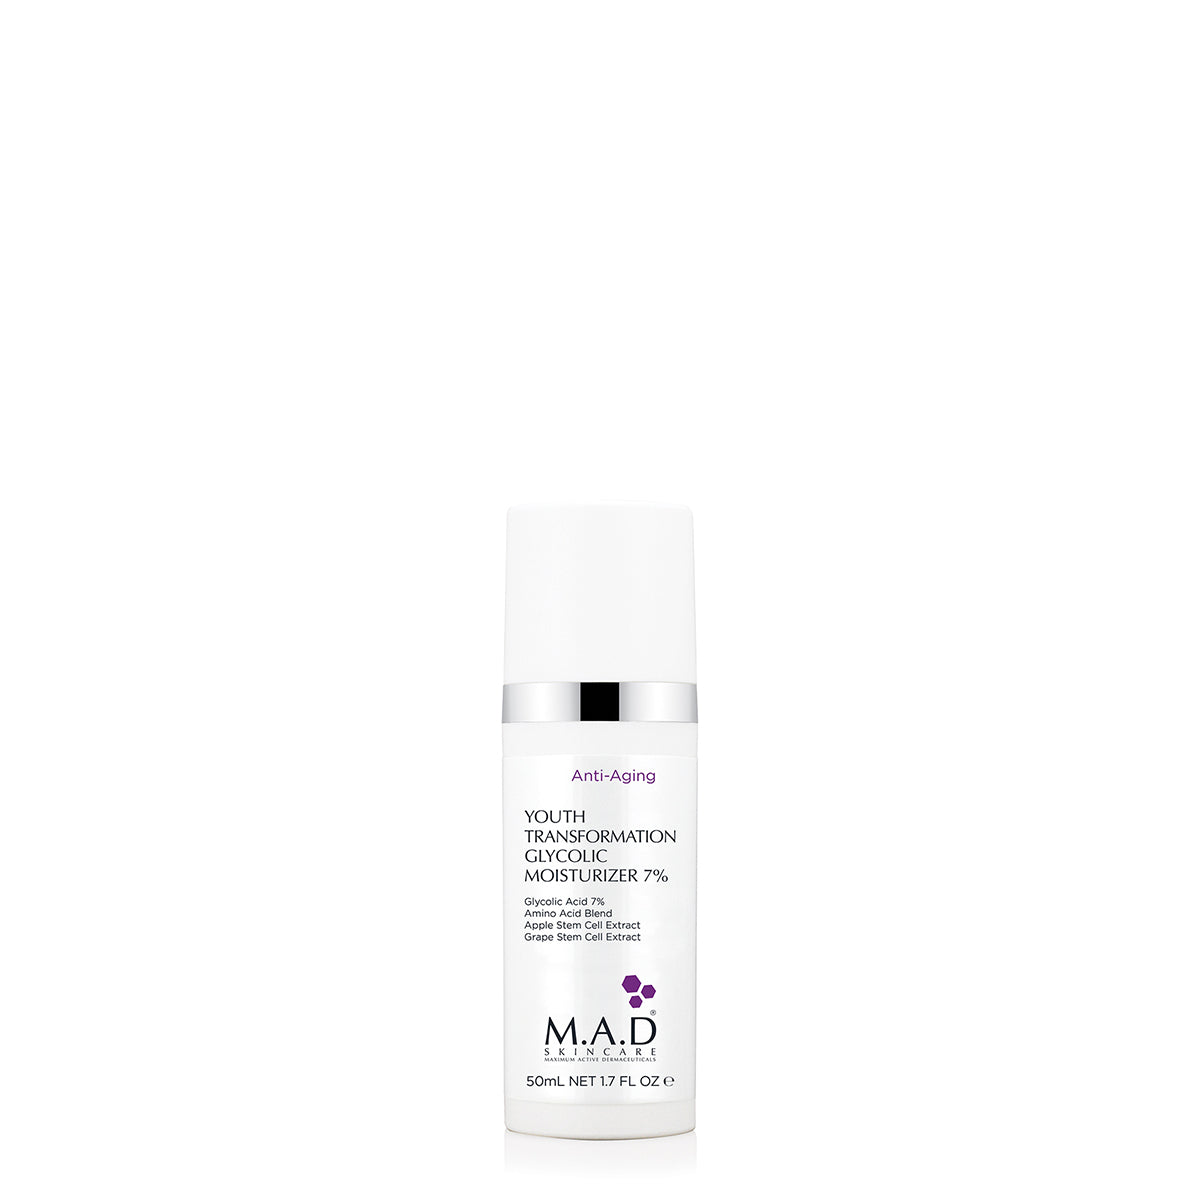 YOUTH TRANSFORMATION GLYCOLIC MOISTURIZER 7%